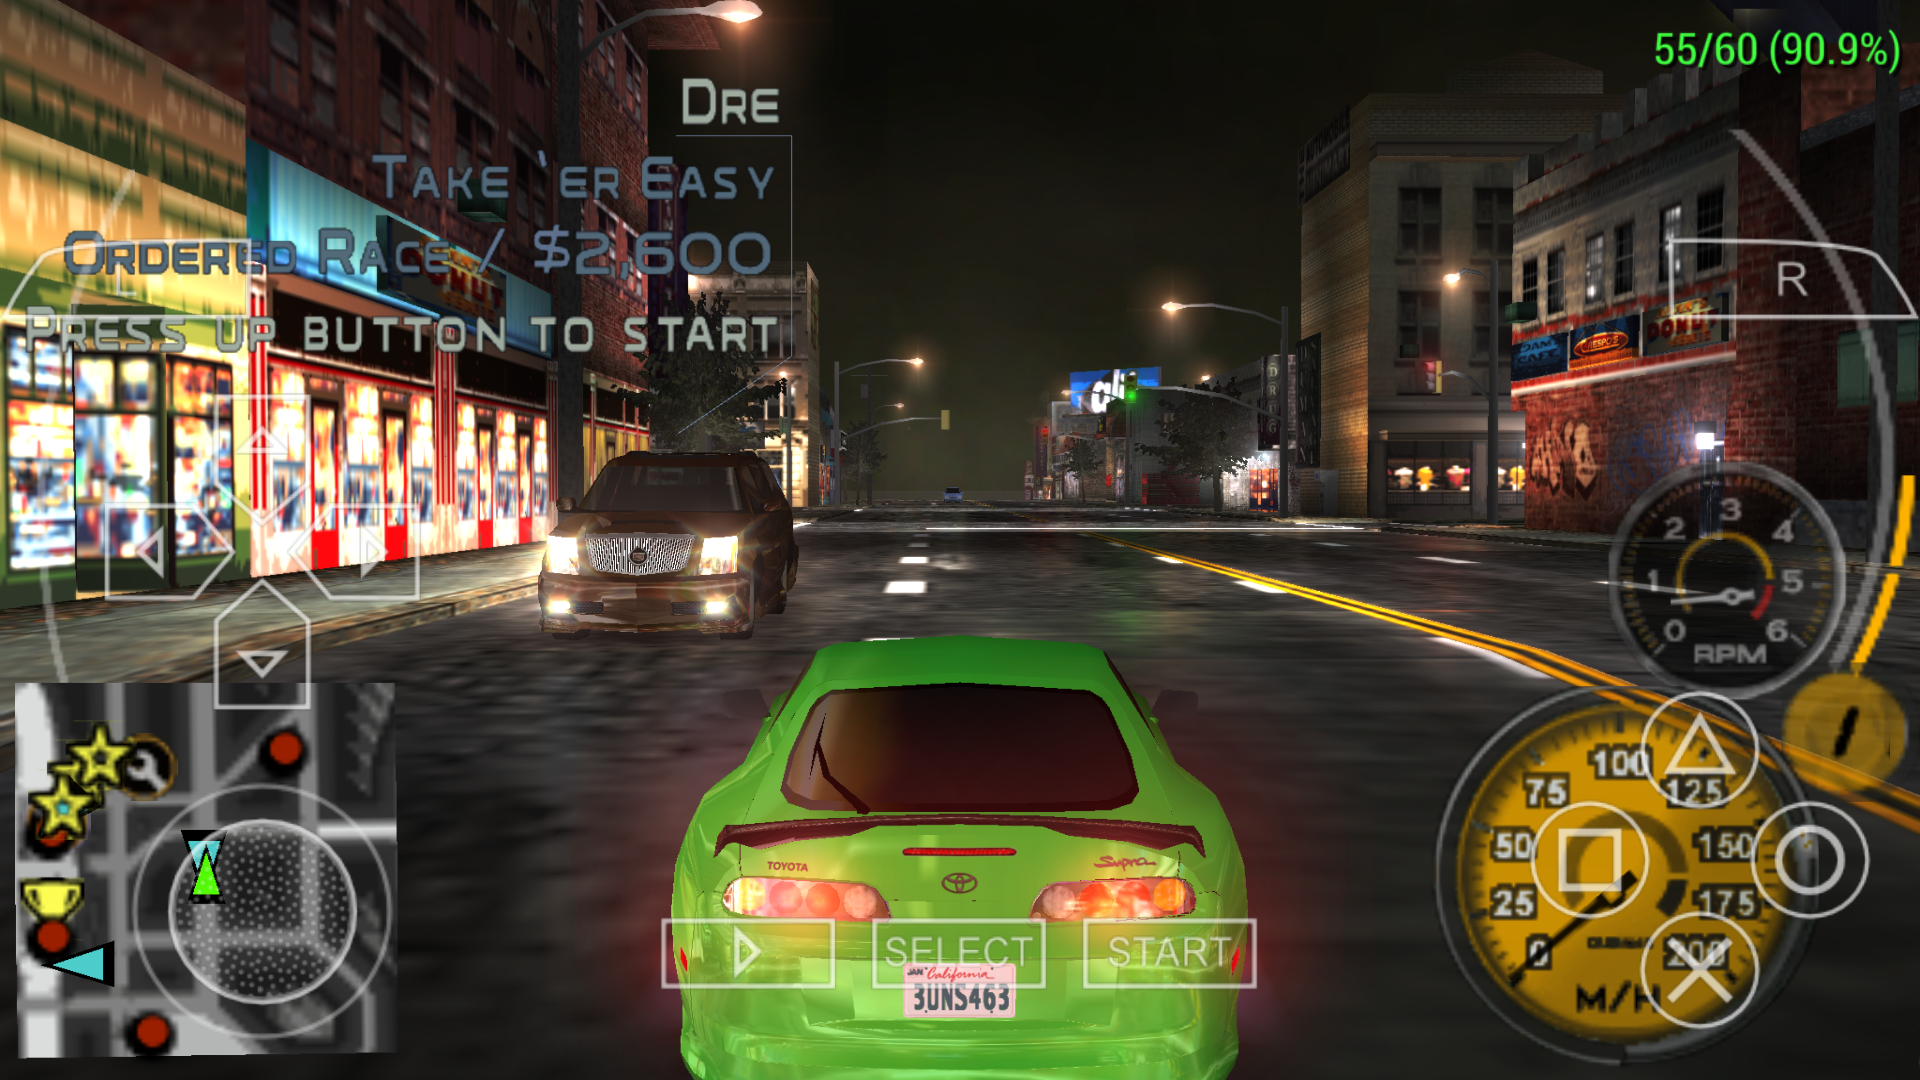 Midnight Club 3 graphics glitches · Issue #10473 · hrydgard/ppsspp